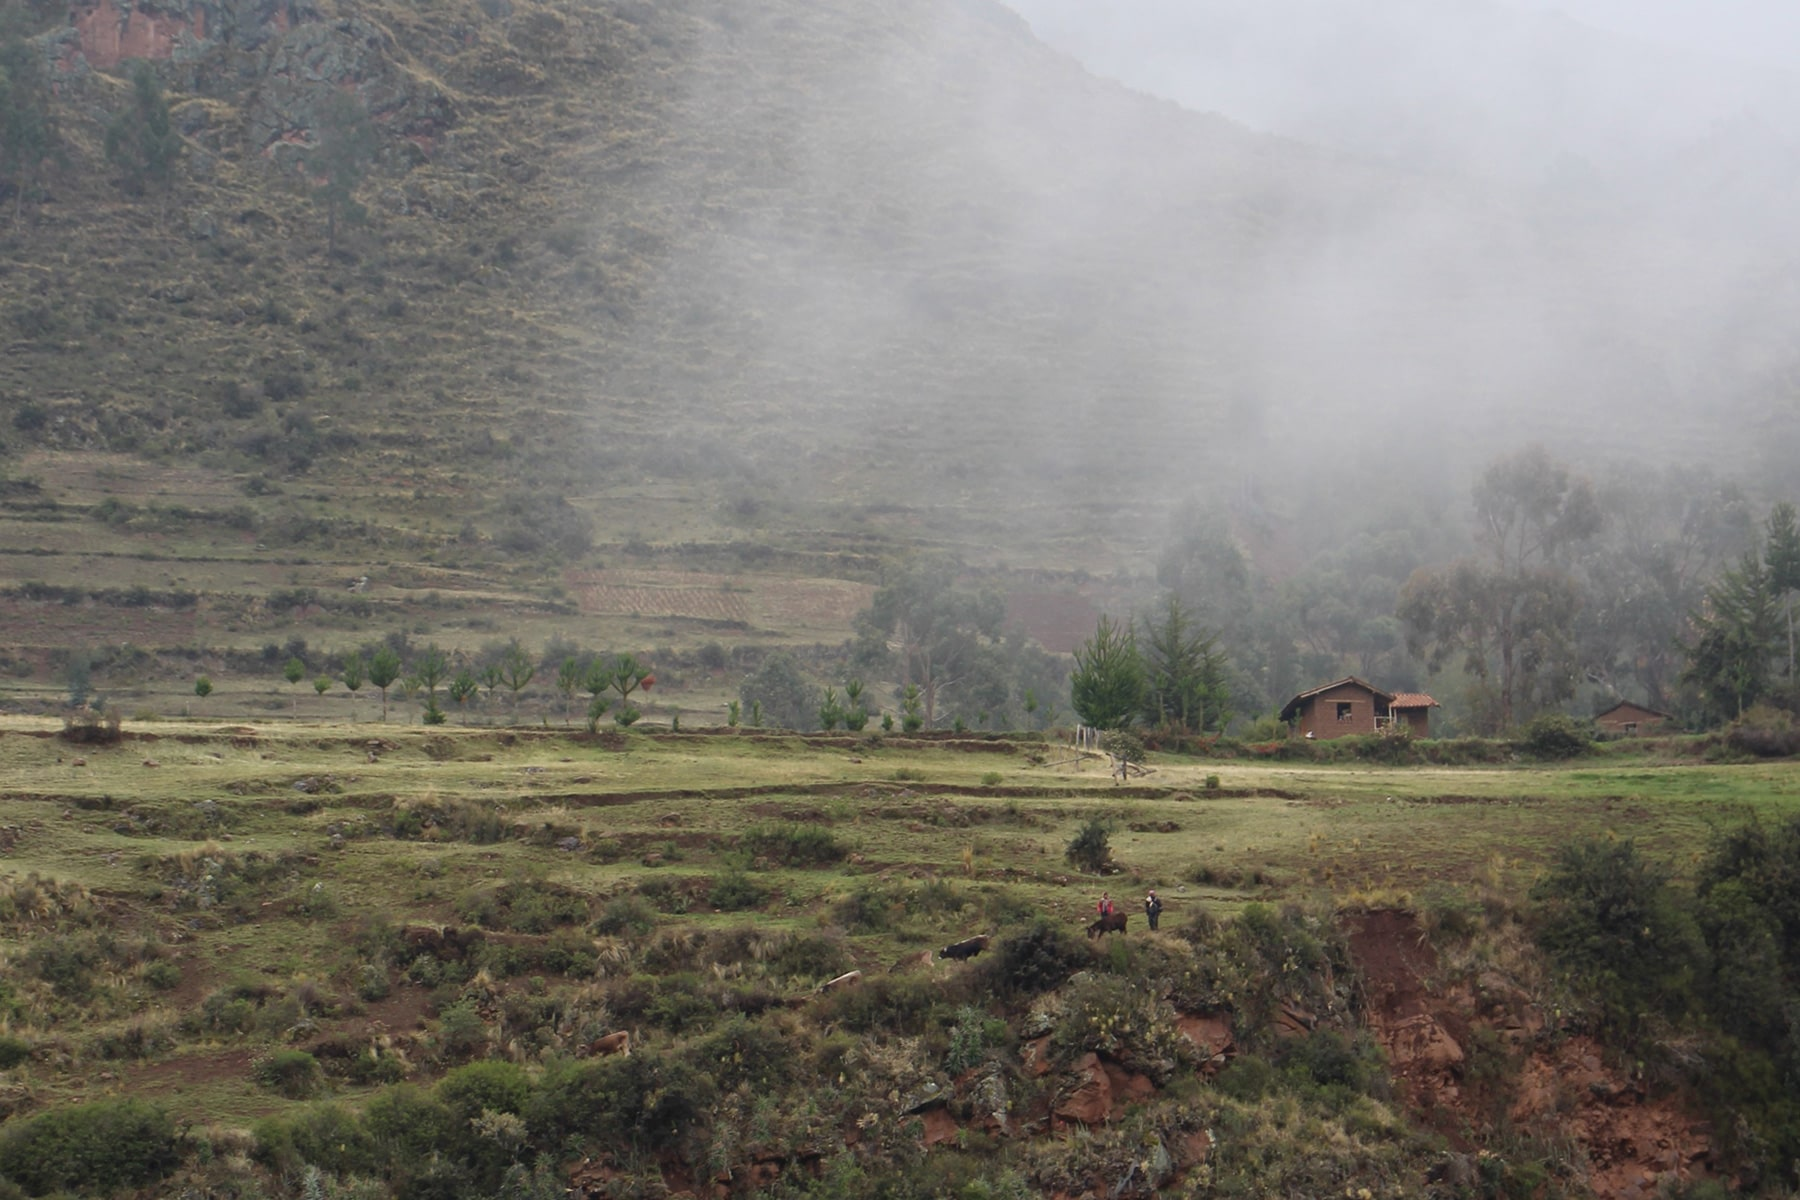 Little houses and people on mountain in fog